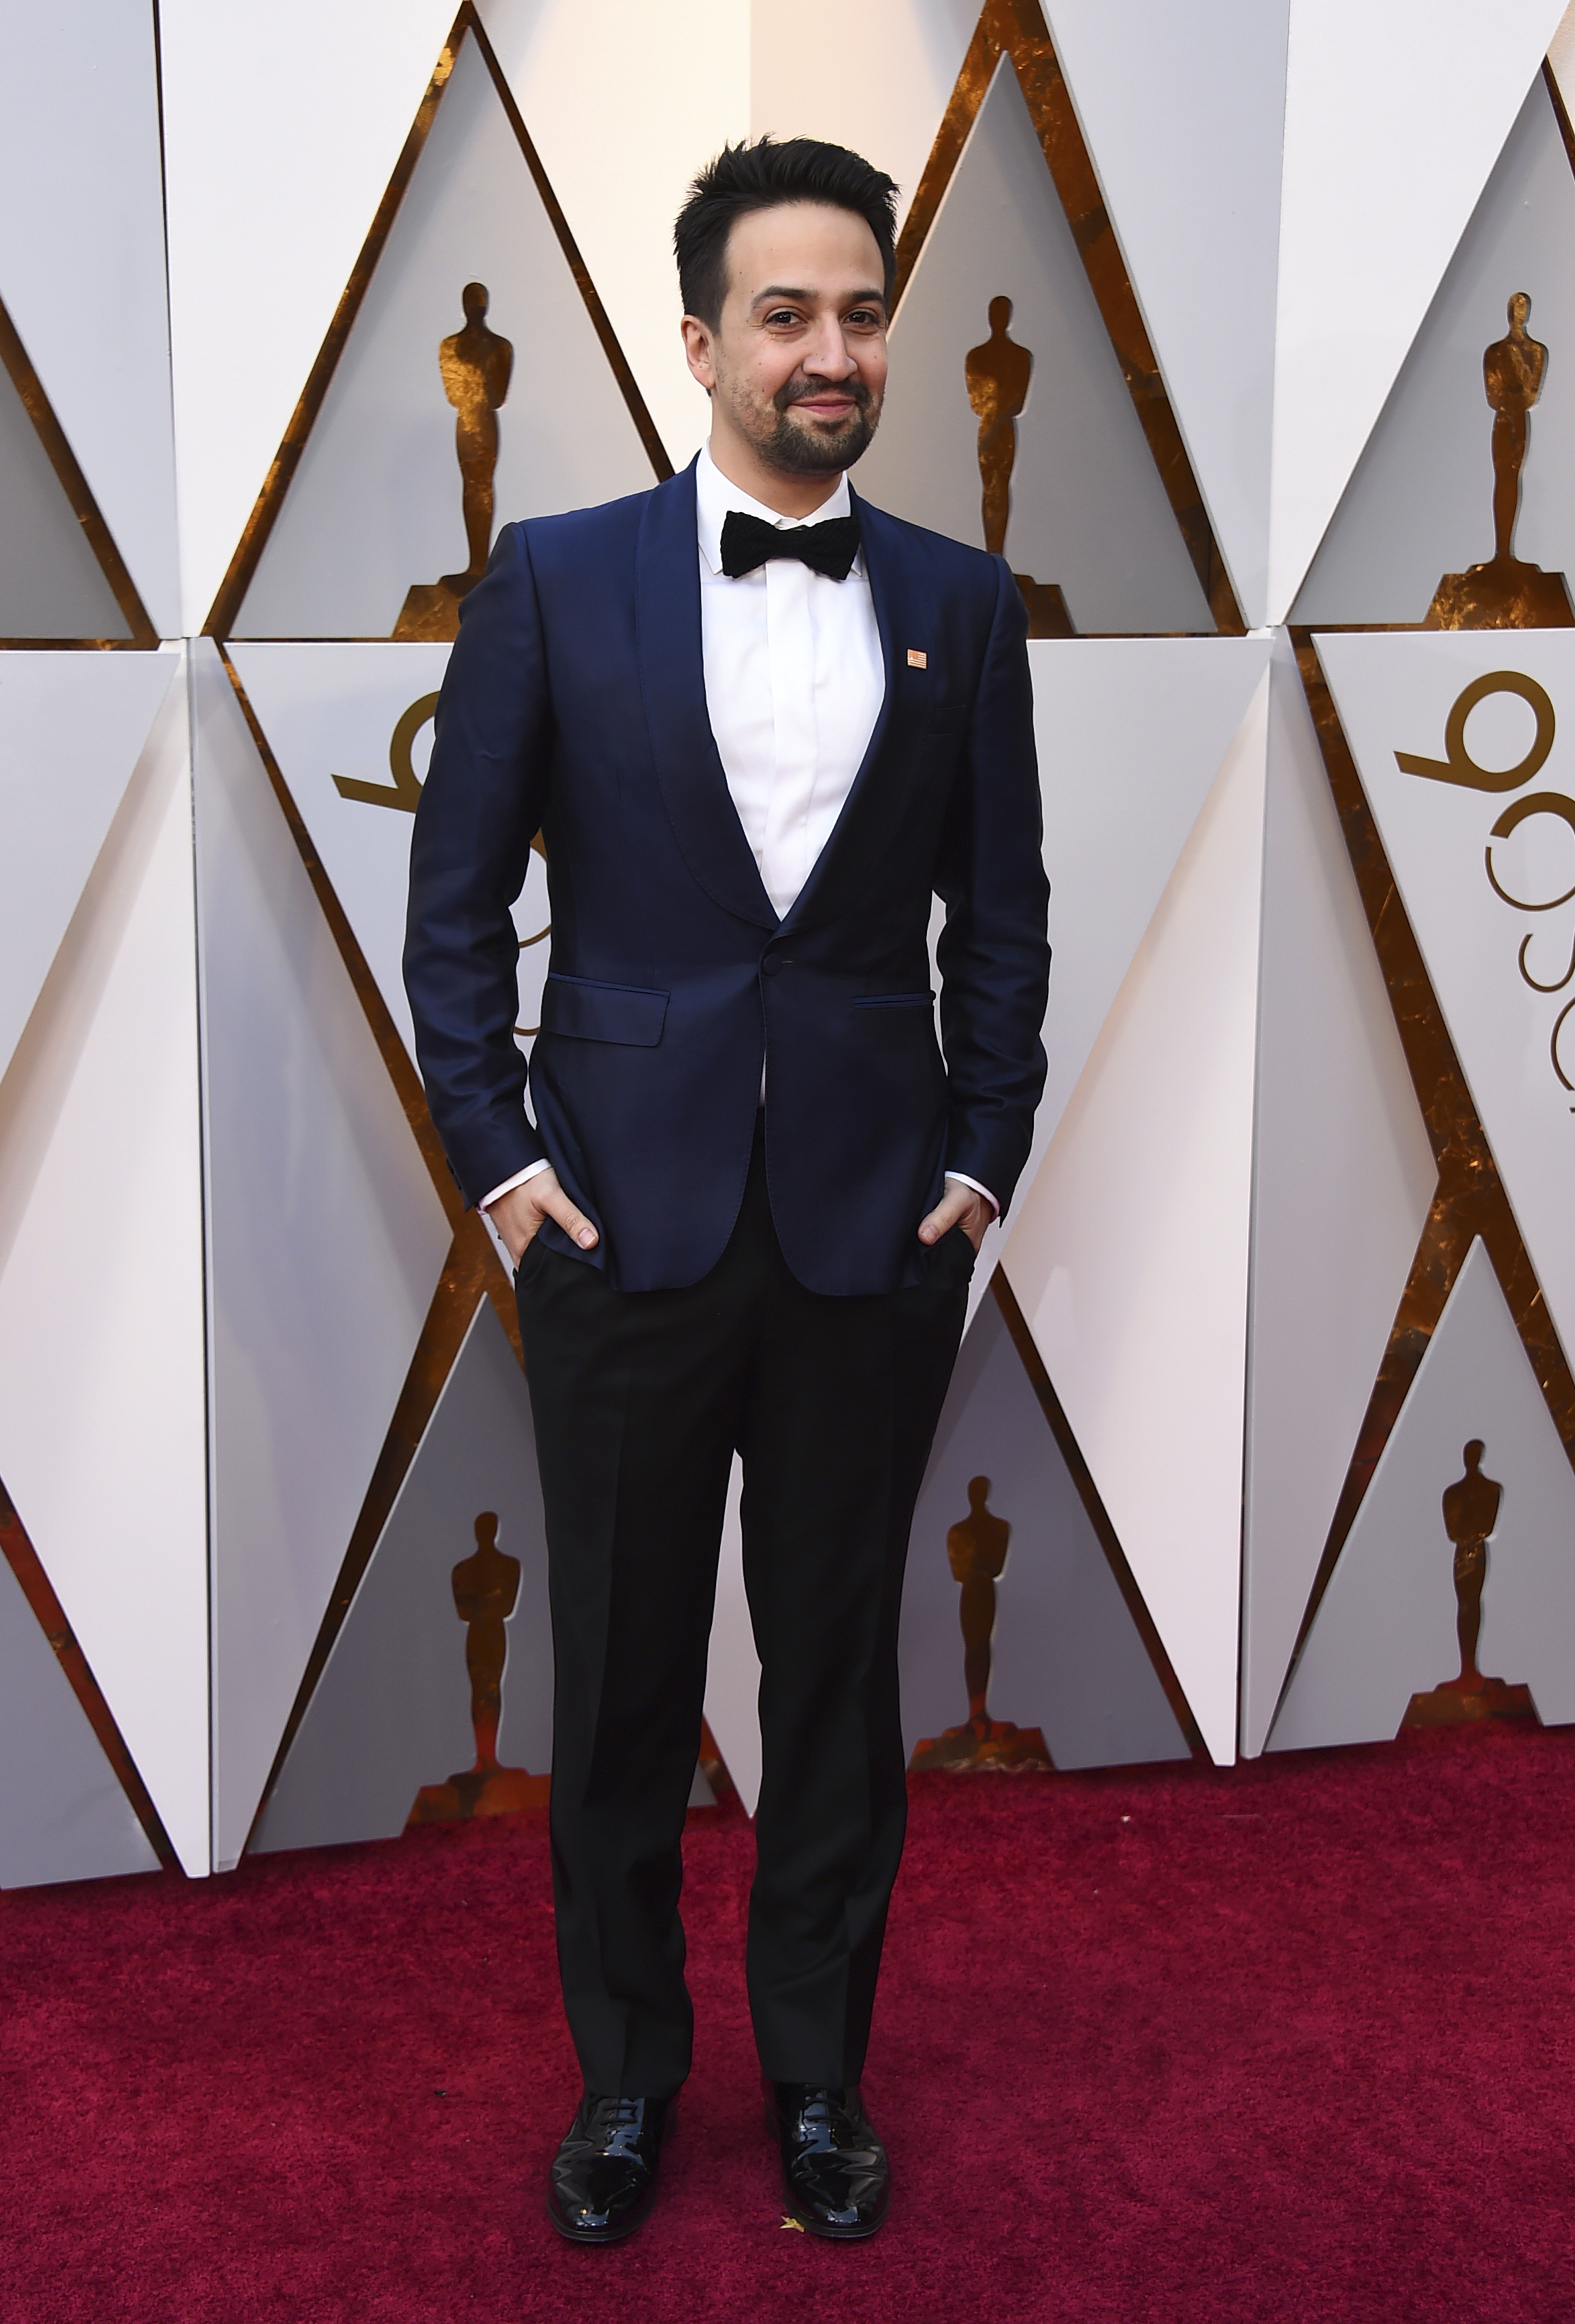 <div class='meta'><div class='origin-logo' data-origin='none'></div><span class='caption-text' data-credit='Jordan Strauss/Invision/AP'>Lin-Manuel Miranda arrives at the Oscars on Sunday, March 4, 2018, at the Dolby Theatre in Los Angeles.</span></div>